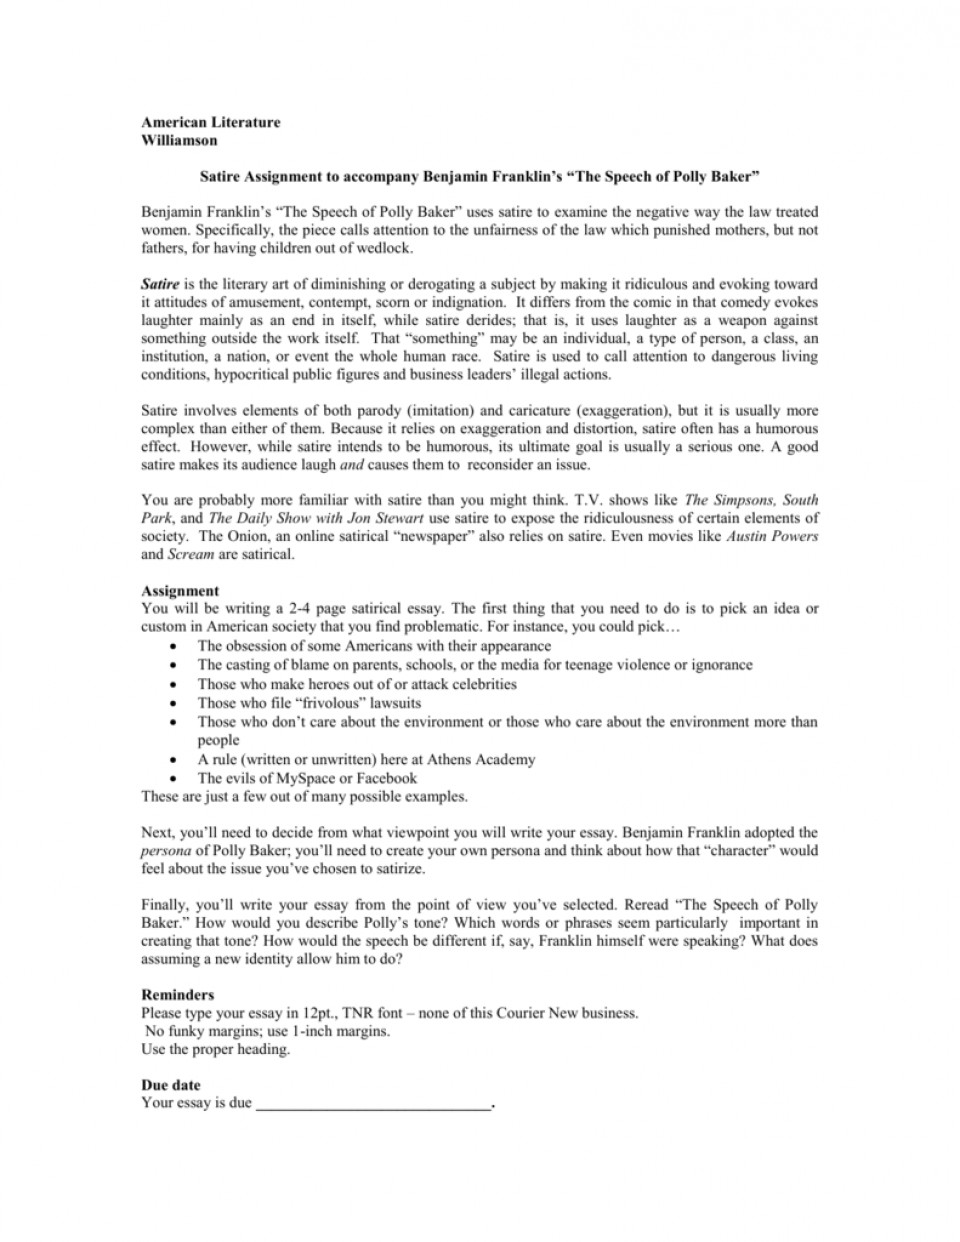 016 008005442 1 Essay Example How To Write Fascinating A Satire An Introduction For Essay-example On Obesity 960